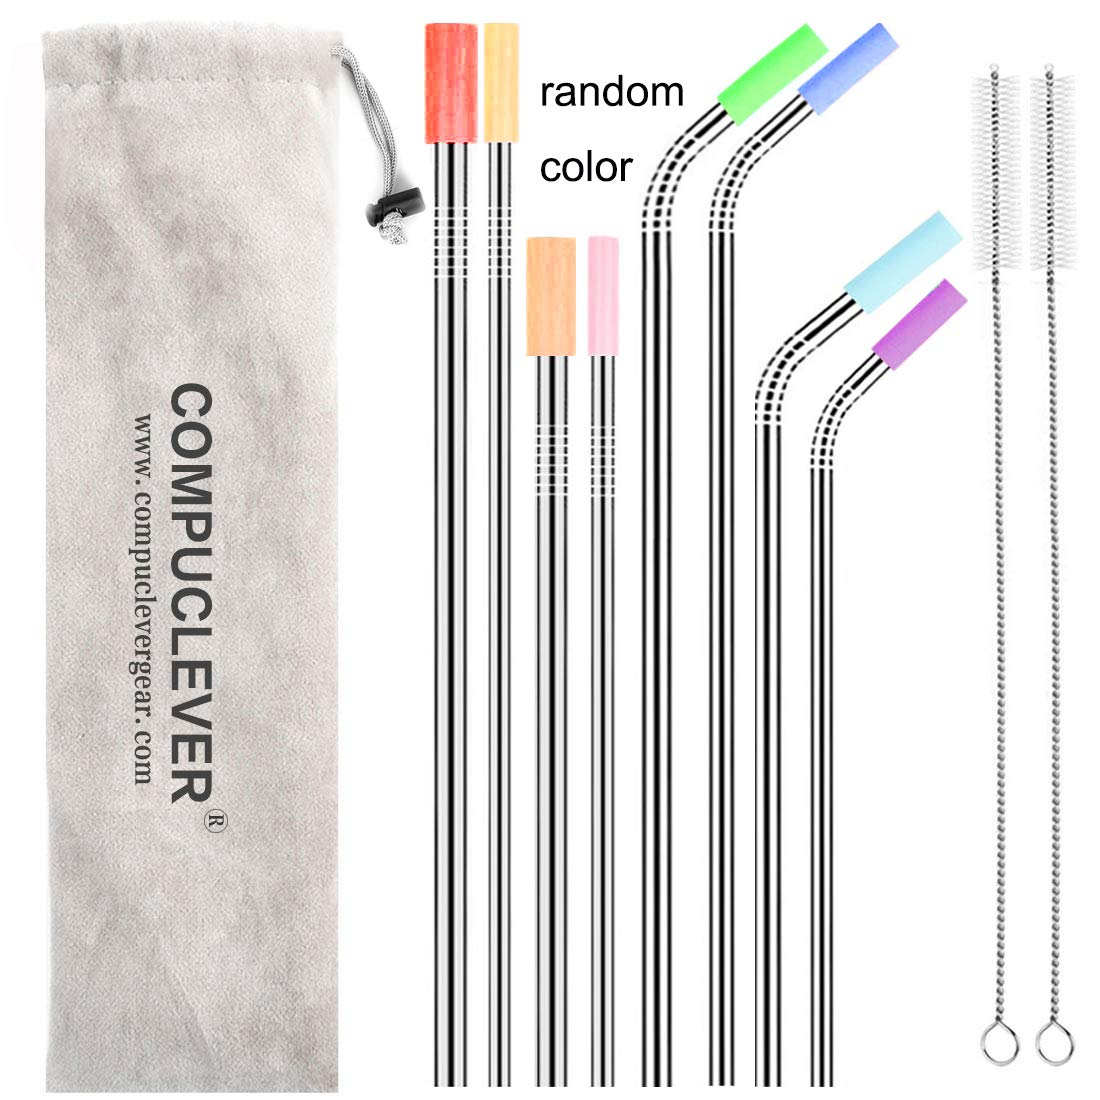 Stainless Steel Straws Set of 8 Reusable Drinking Straws for 30oz 20oz Tumbler 10.5'' 8.5'' Diameter 0.24'' 0.31'' with 8 Silicone Tips 2 Cleaning Brushes and Pouch(4 Bent 4 Straight) (8.5'' 10.5'')